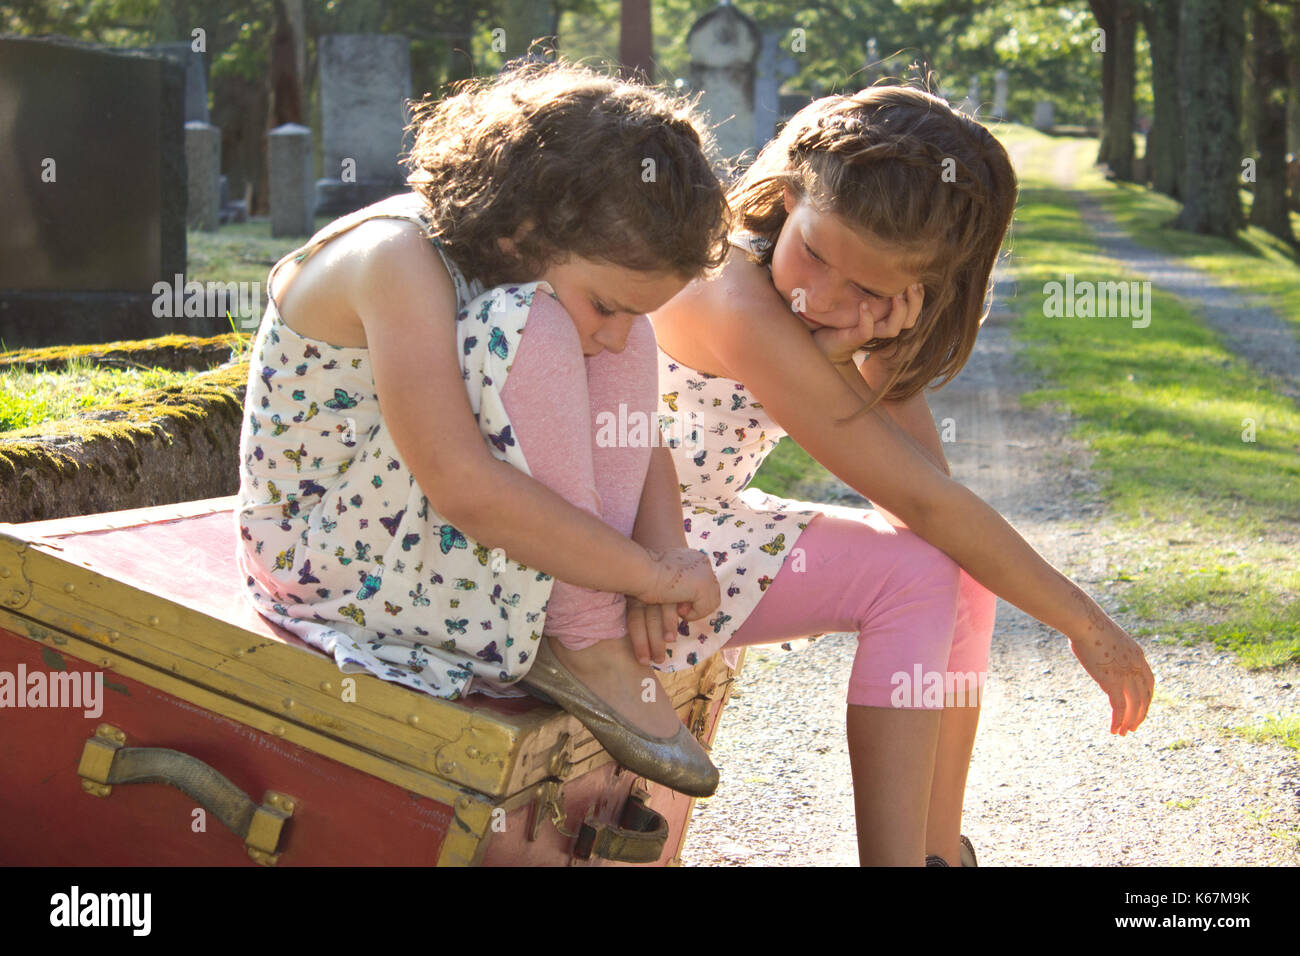 two sad brown haired girls sit on a red box in the cemetery with sad expressions - Stock Image